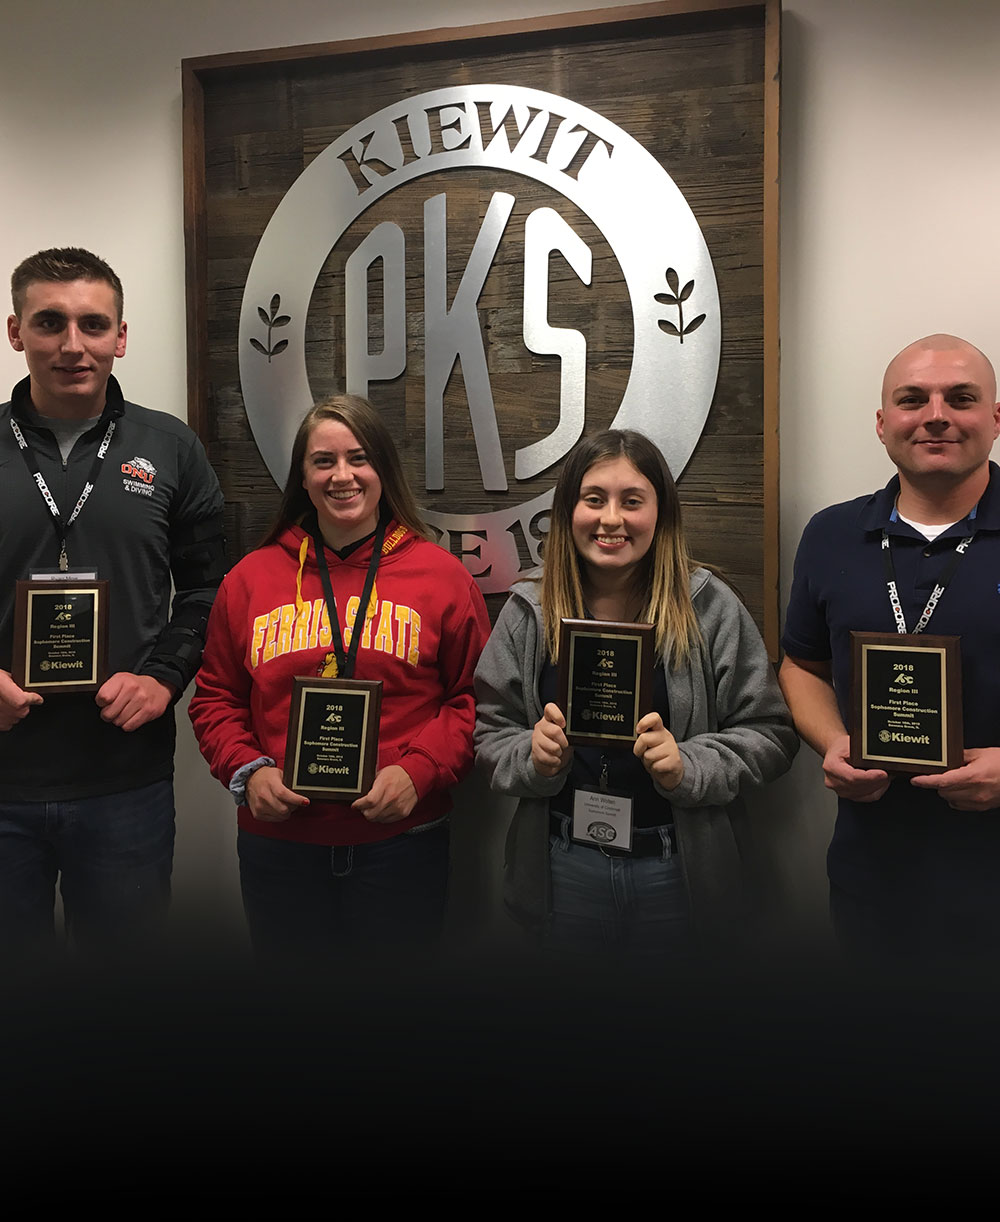 Student competition teams Kiewit